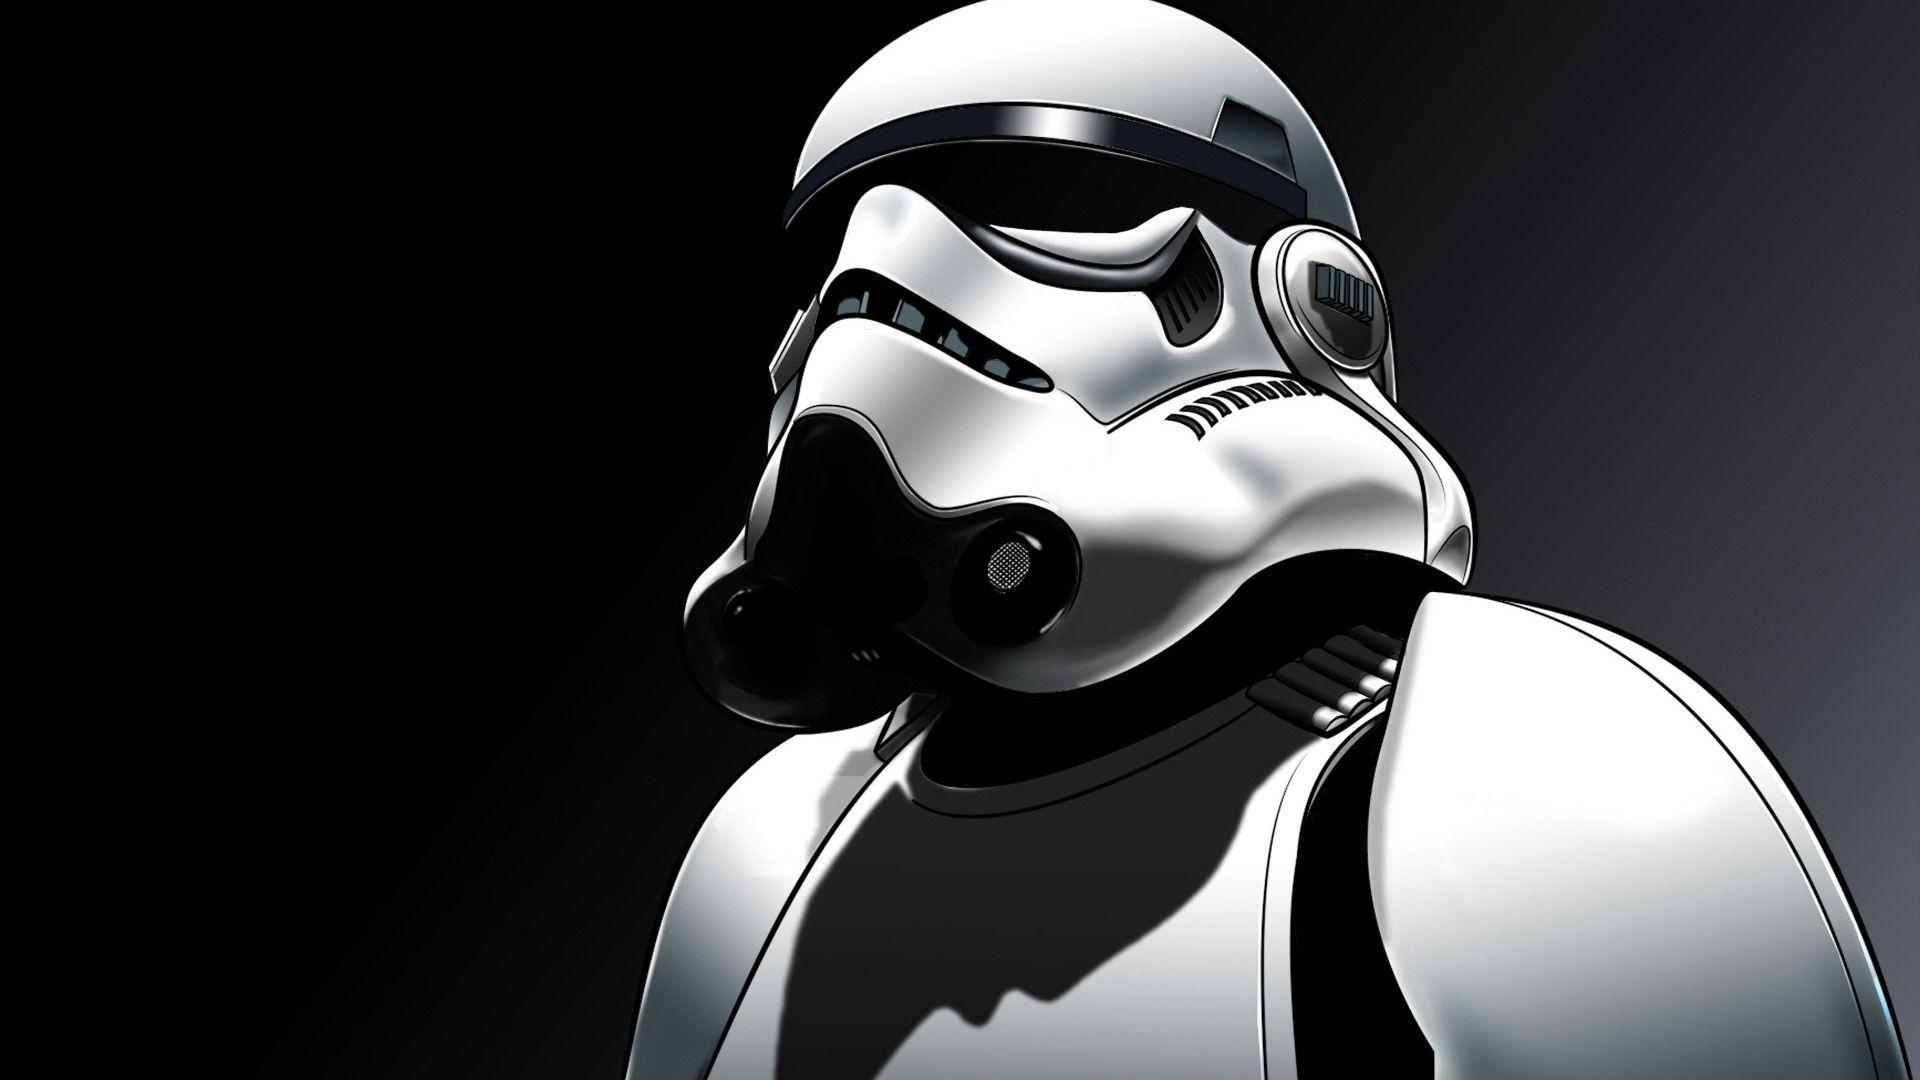 Movie Wallpapers Star Wars Soldier Wallpaper #835 Wallpaper | WallGoo.